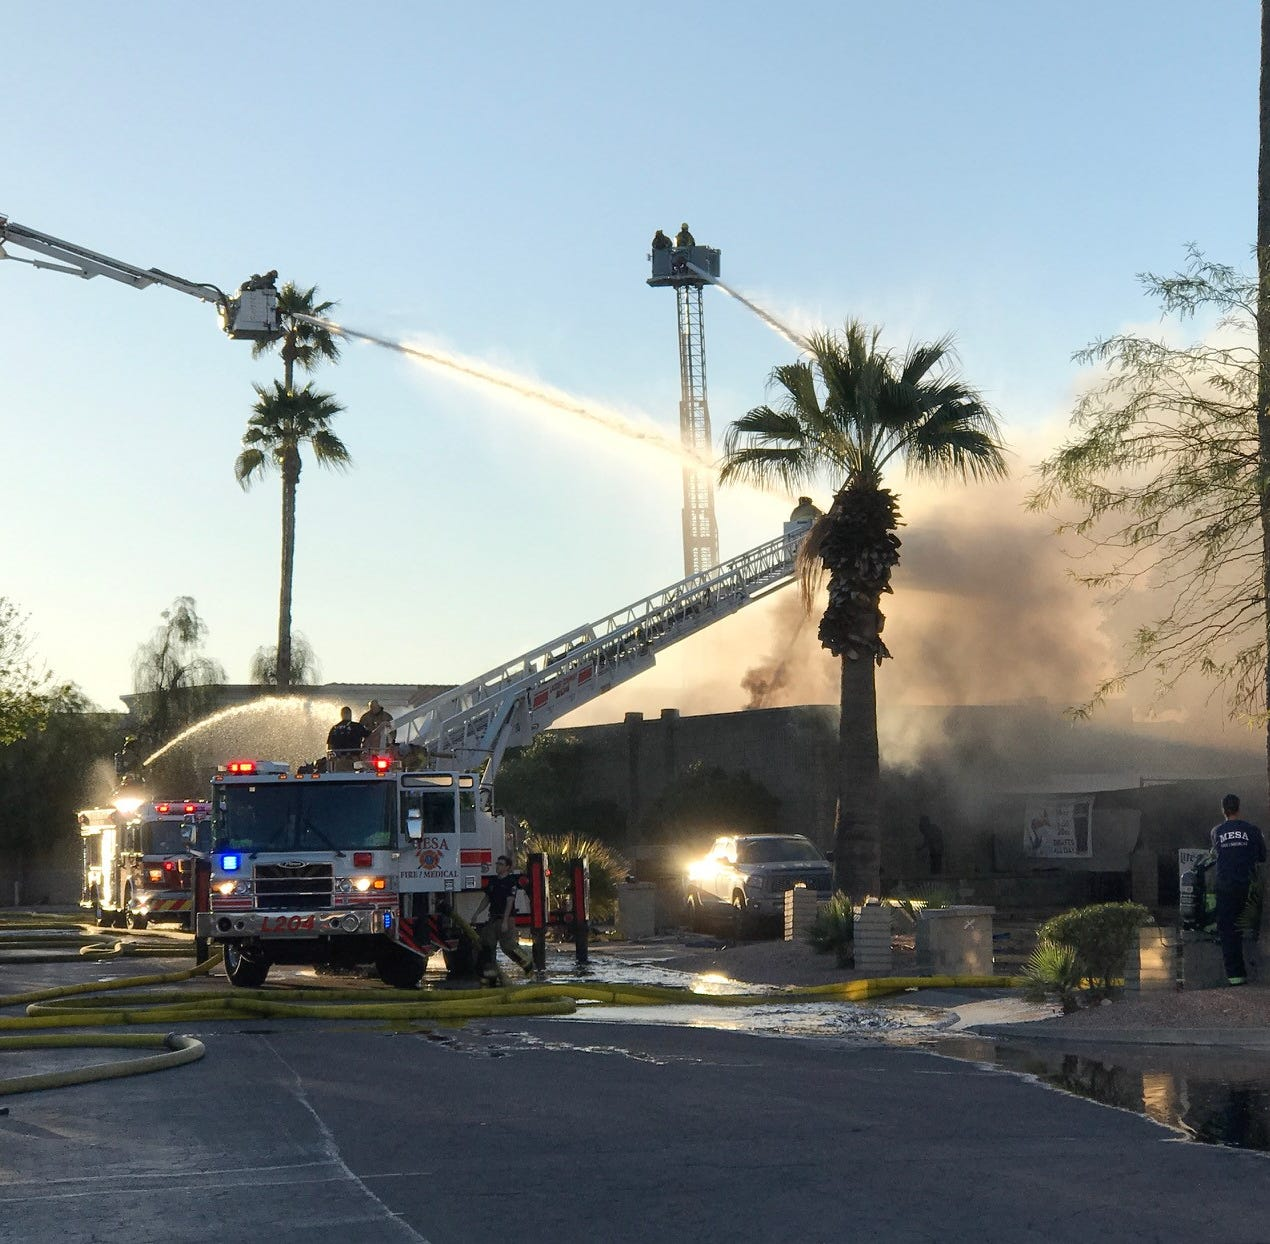 What's next for Doc & Eddy's Tempe bar that caught fire Sunday